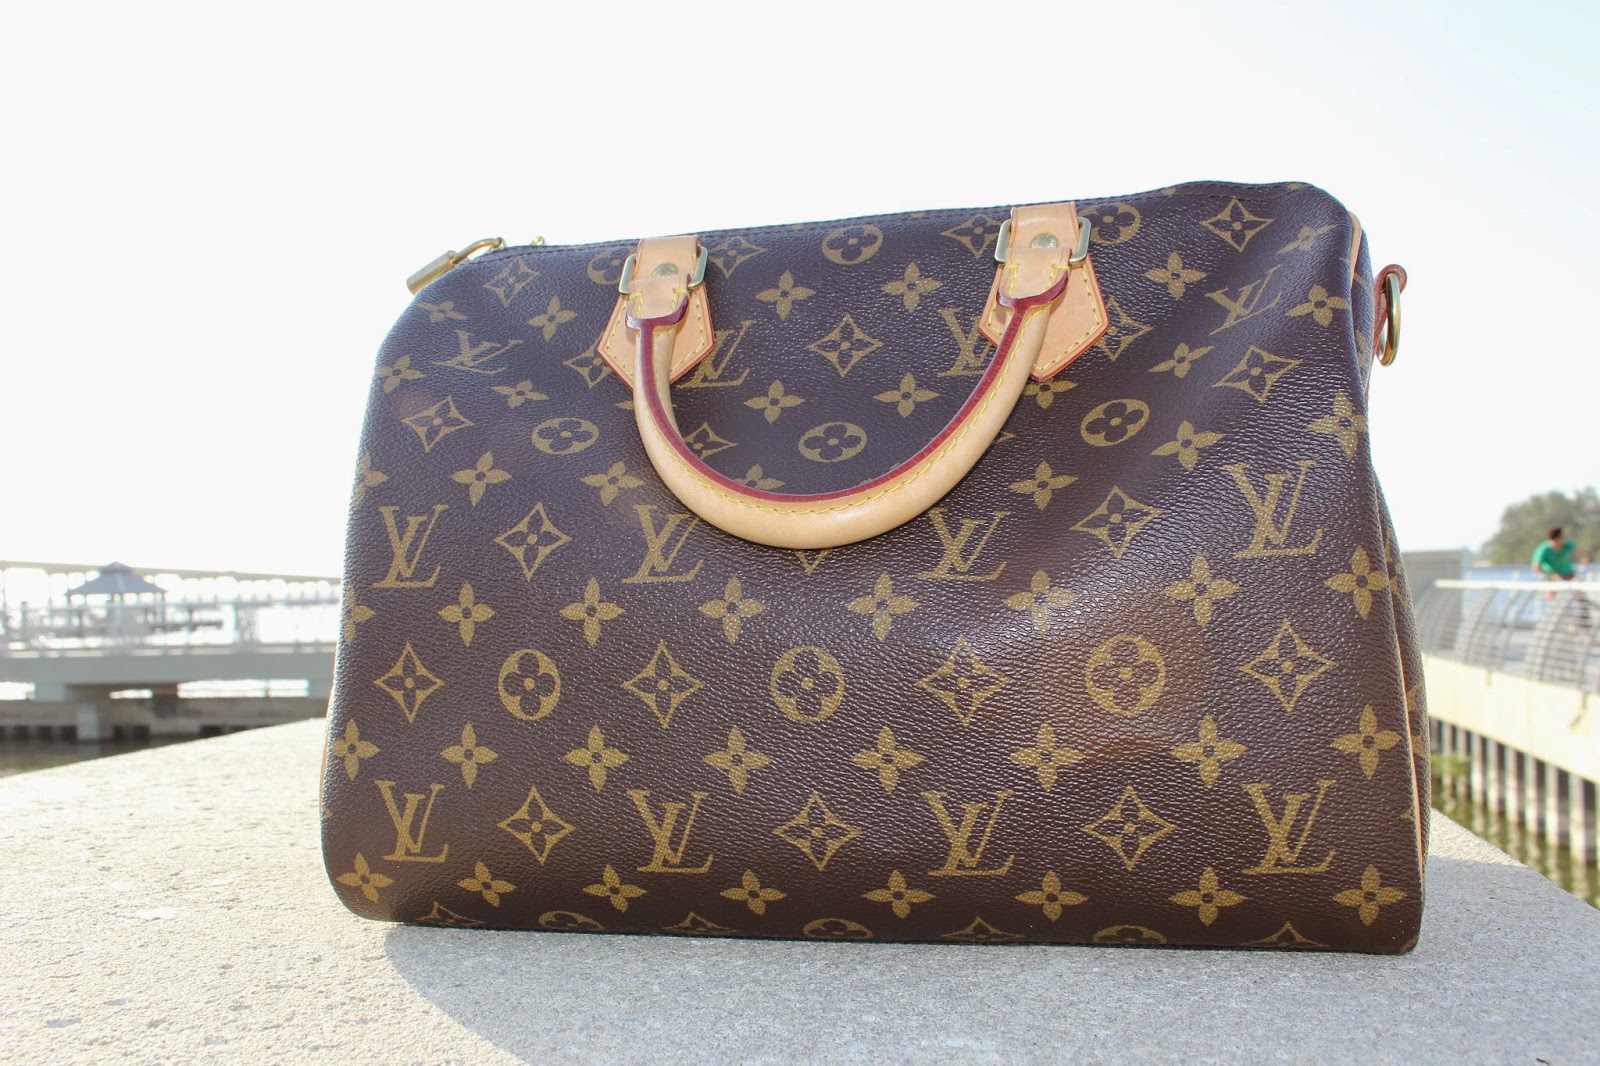 c8697dfed25d Stephanie Kamp  Louis Vuitton Speedy Bandoulière 30 Review